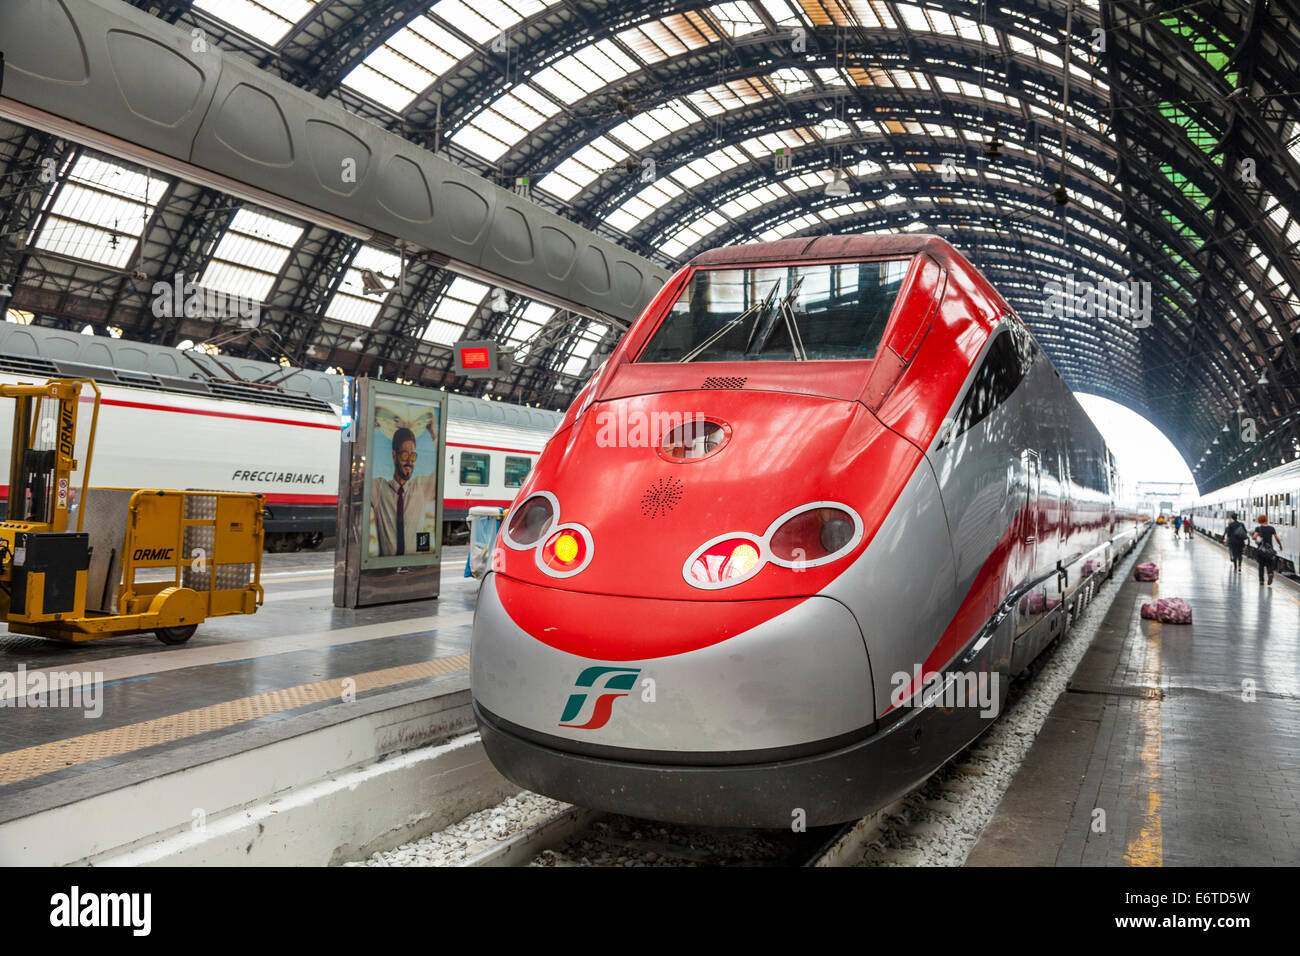 Freccia Rossa high speed train in Milan Central Station - Milan Centrale Stazione - Italy - Stock Image